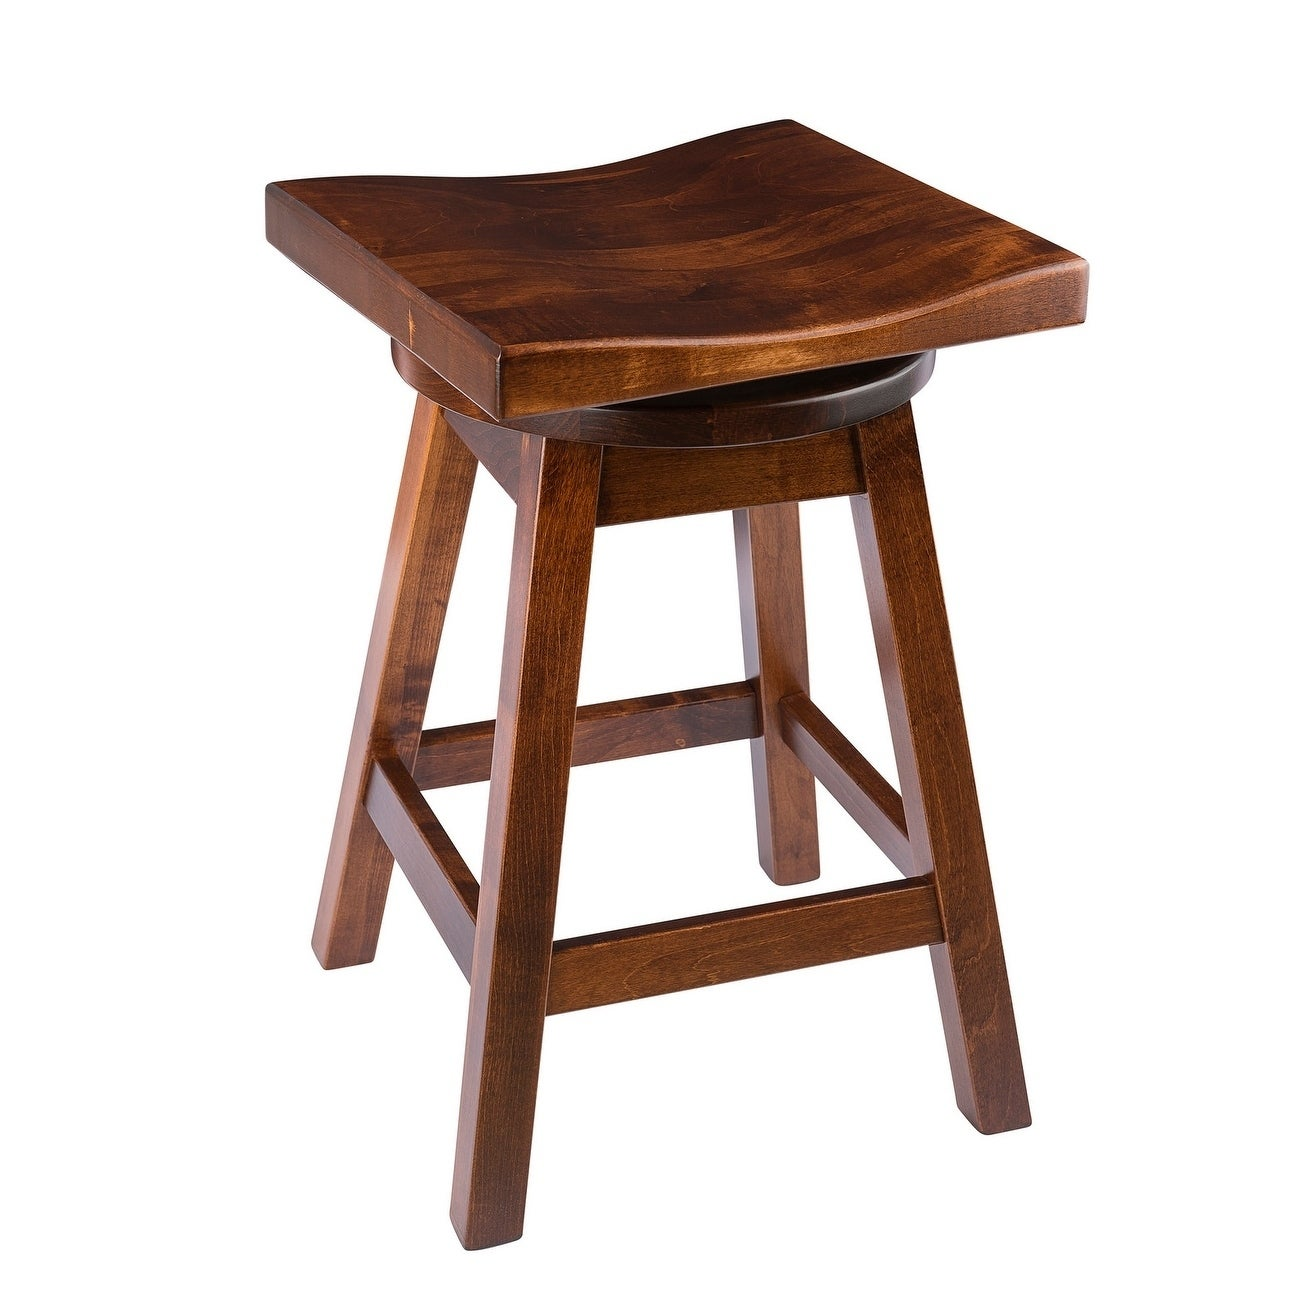 Pleasing Saddle Style Swivel Bar Stool In Maple Wood Caraccident5 Cool Chair Designs And Ideas Caraccident5Info